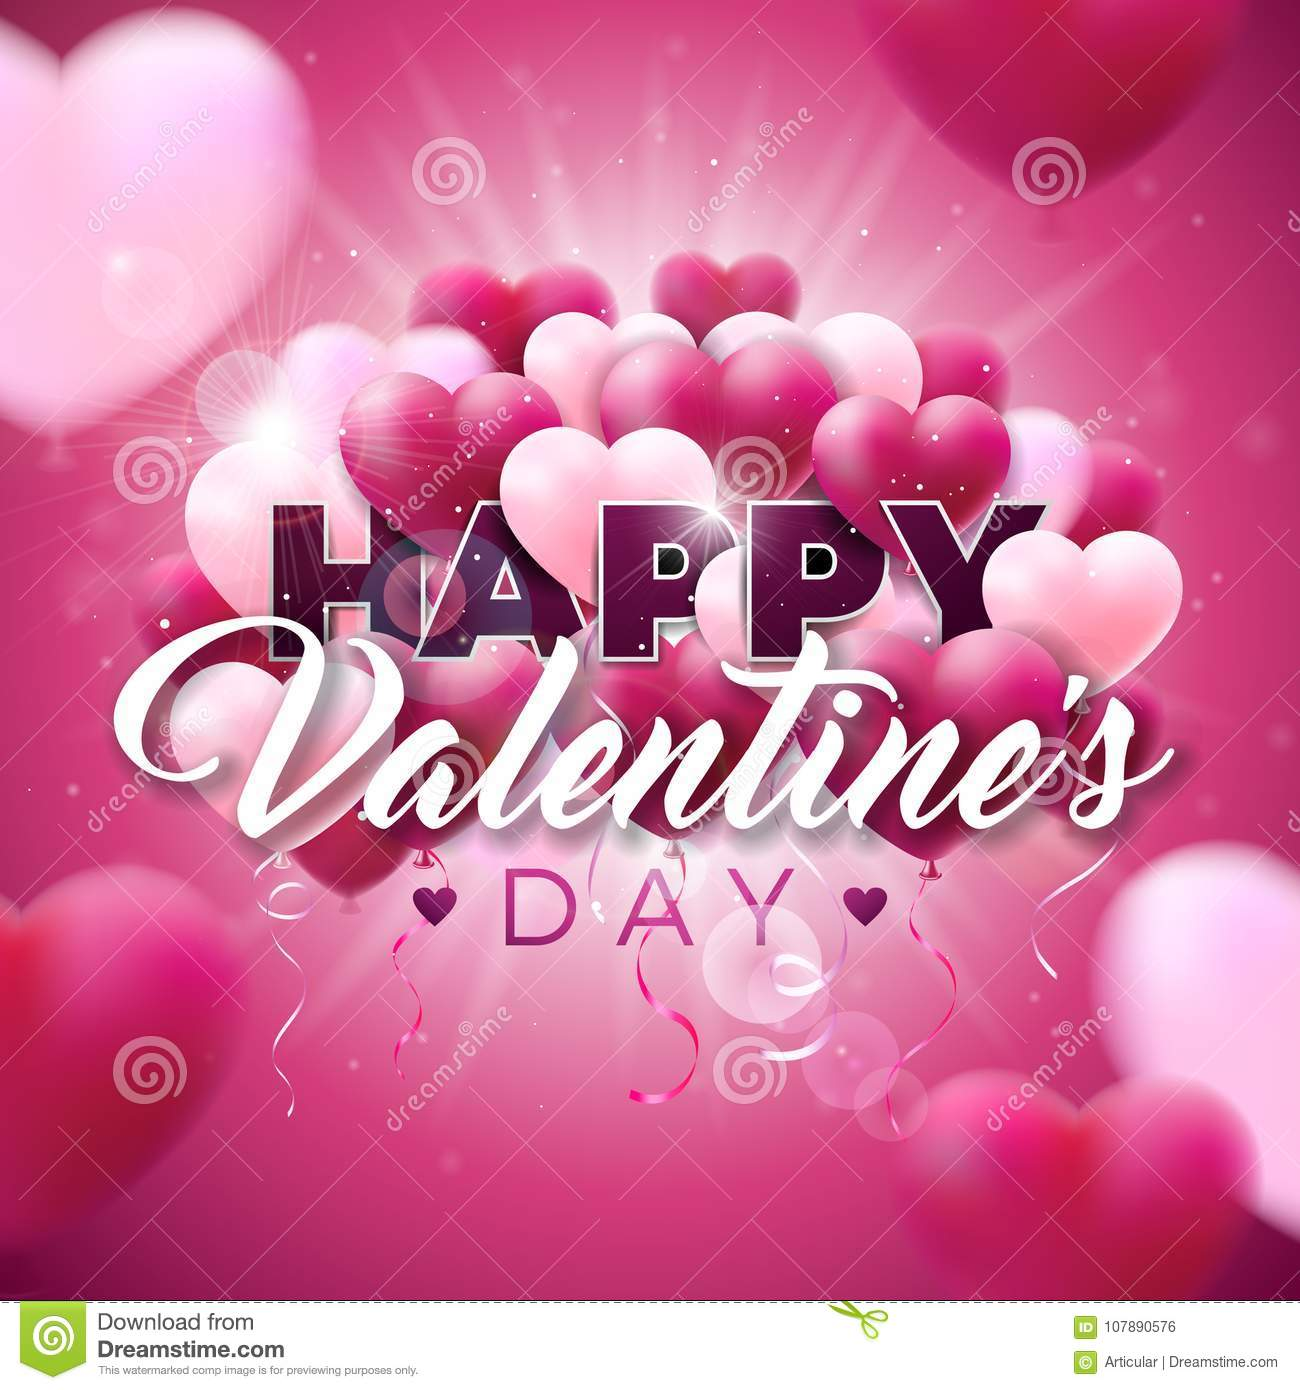 Happy Valentines Day Design With Color Balloon Heart And Typography ...